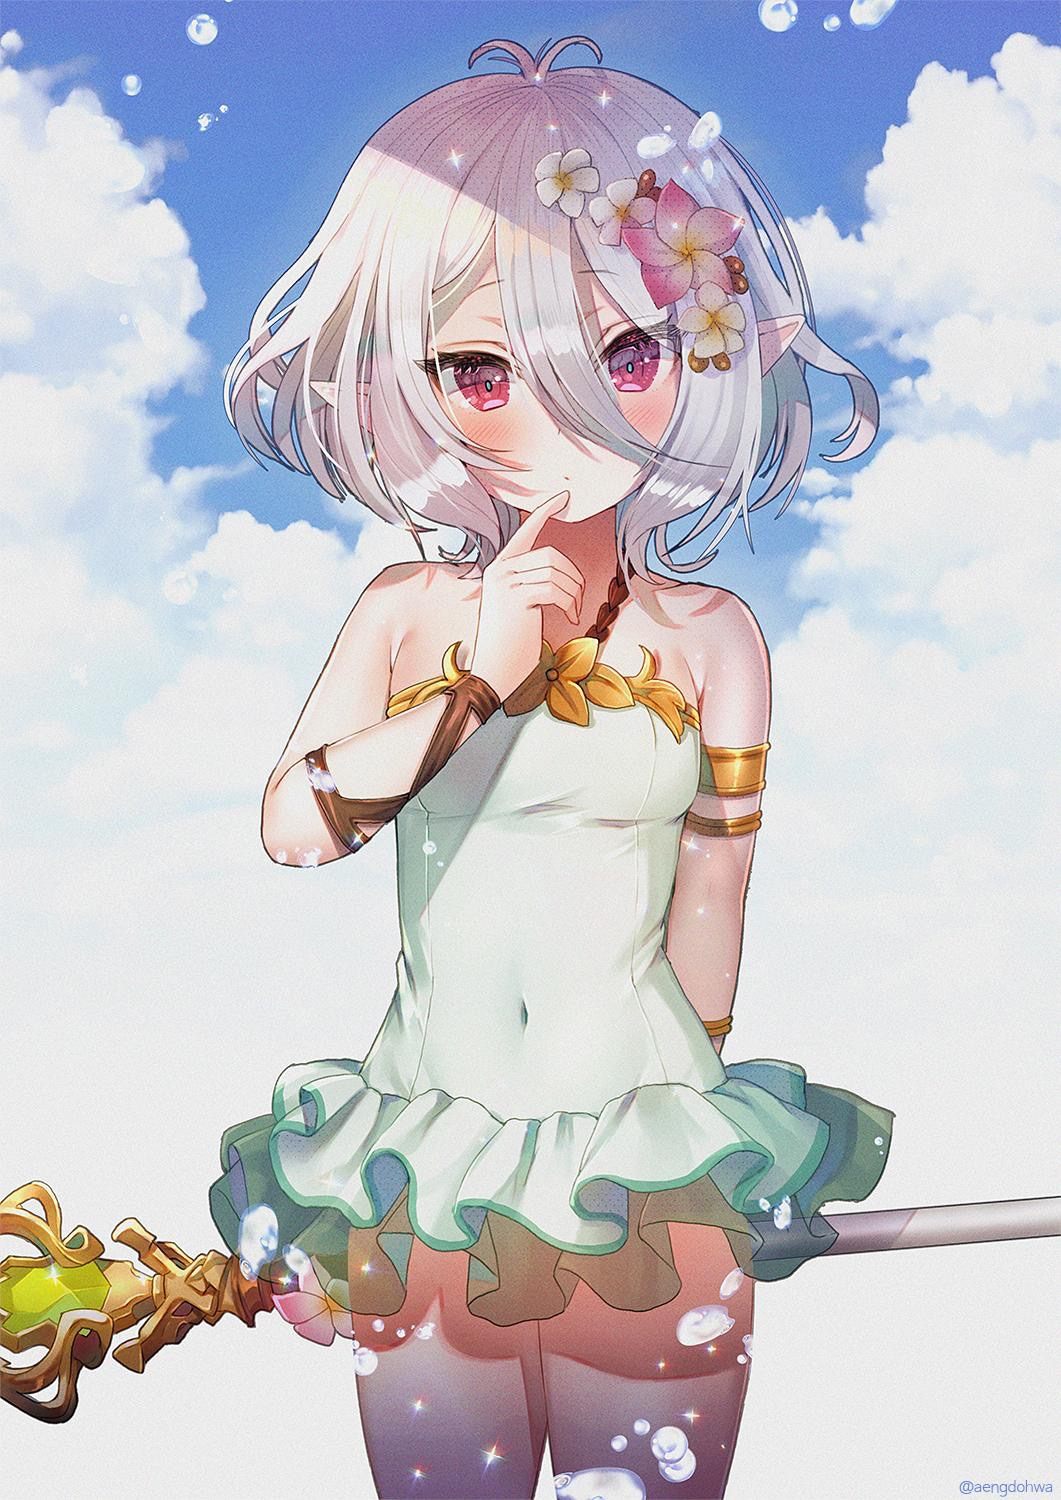 1girl antenna_hair armlet artist_name bare_shoulders blue_sky blush breasts closed_mouth clouds commentary_request covered_navel day eyebrows_visible_through_hair eyes_visible_through_hair finger_to_mouth flower frilled_swimsuit frills hair_between_eyes hair_flower hair_ornament hanato_(seonoaiko) hand_up highres holding holding_staff kokkoro_(princess_connect!) looking_at_viewer outdoors pointy_ears princess_connect! princess_connect!_re:dive red_eyes short_hair sky small_breasts solo staff standing swimsuit tsurime water_drop white_hair